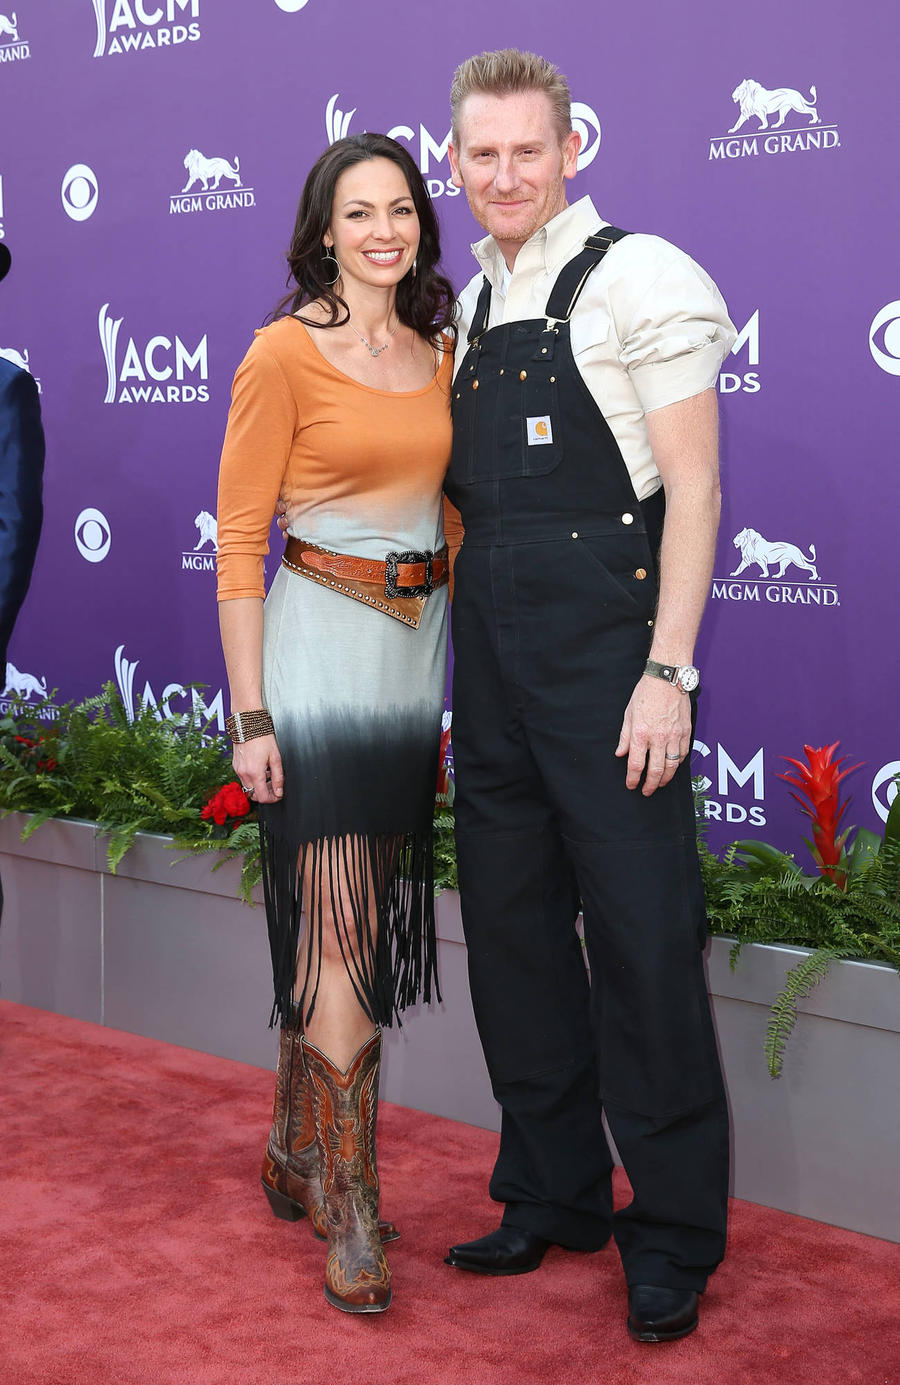 Joey + Rory Up For Four Dove Awards Five Months After Singer's Death